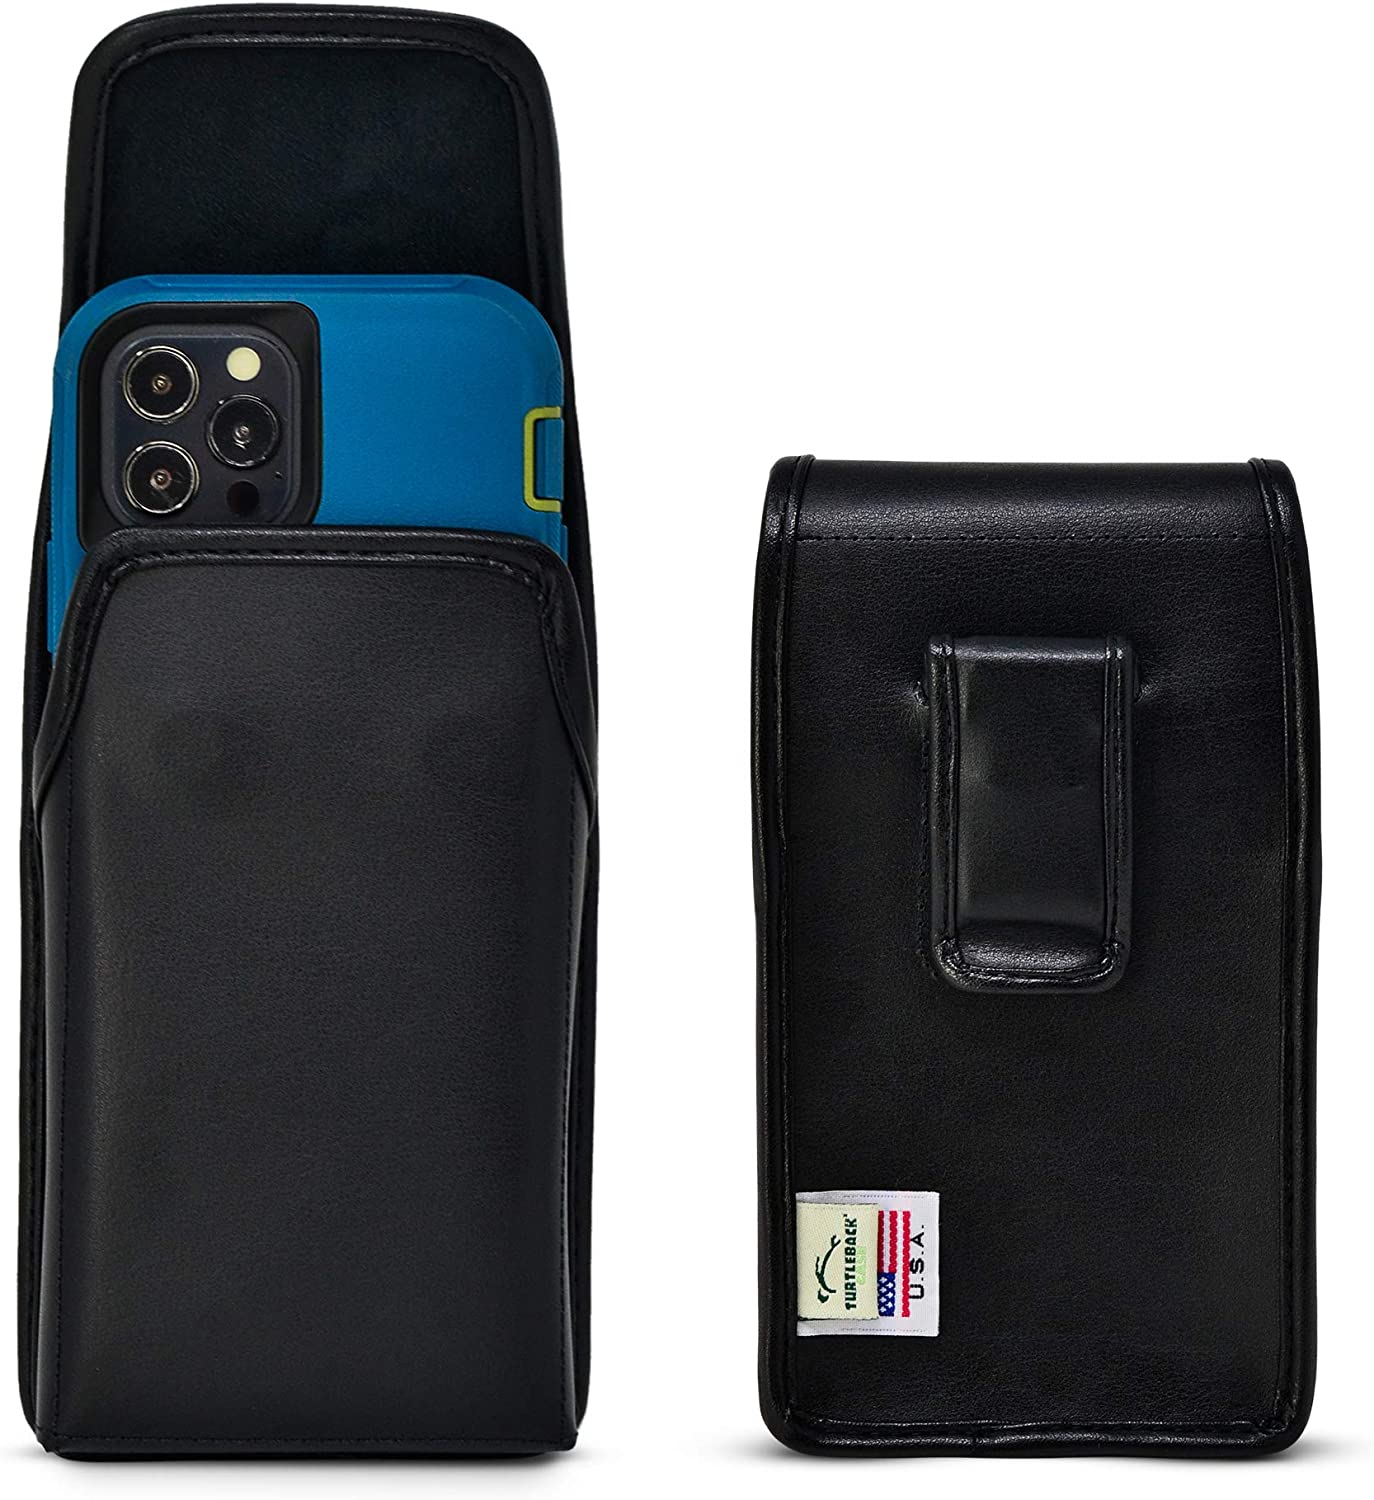 Turtleback Holster Designed for iPhone 12 13 & Pro Fits w/OB Defender or Bulky Cases, Vertical Belt Case Black Leather Pouch with Executive Belt Clip, Made in USA